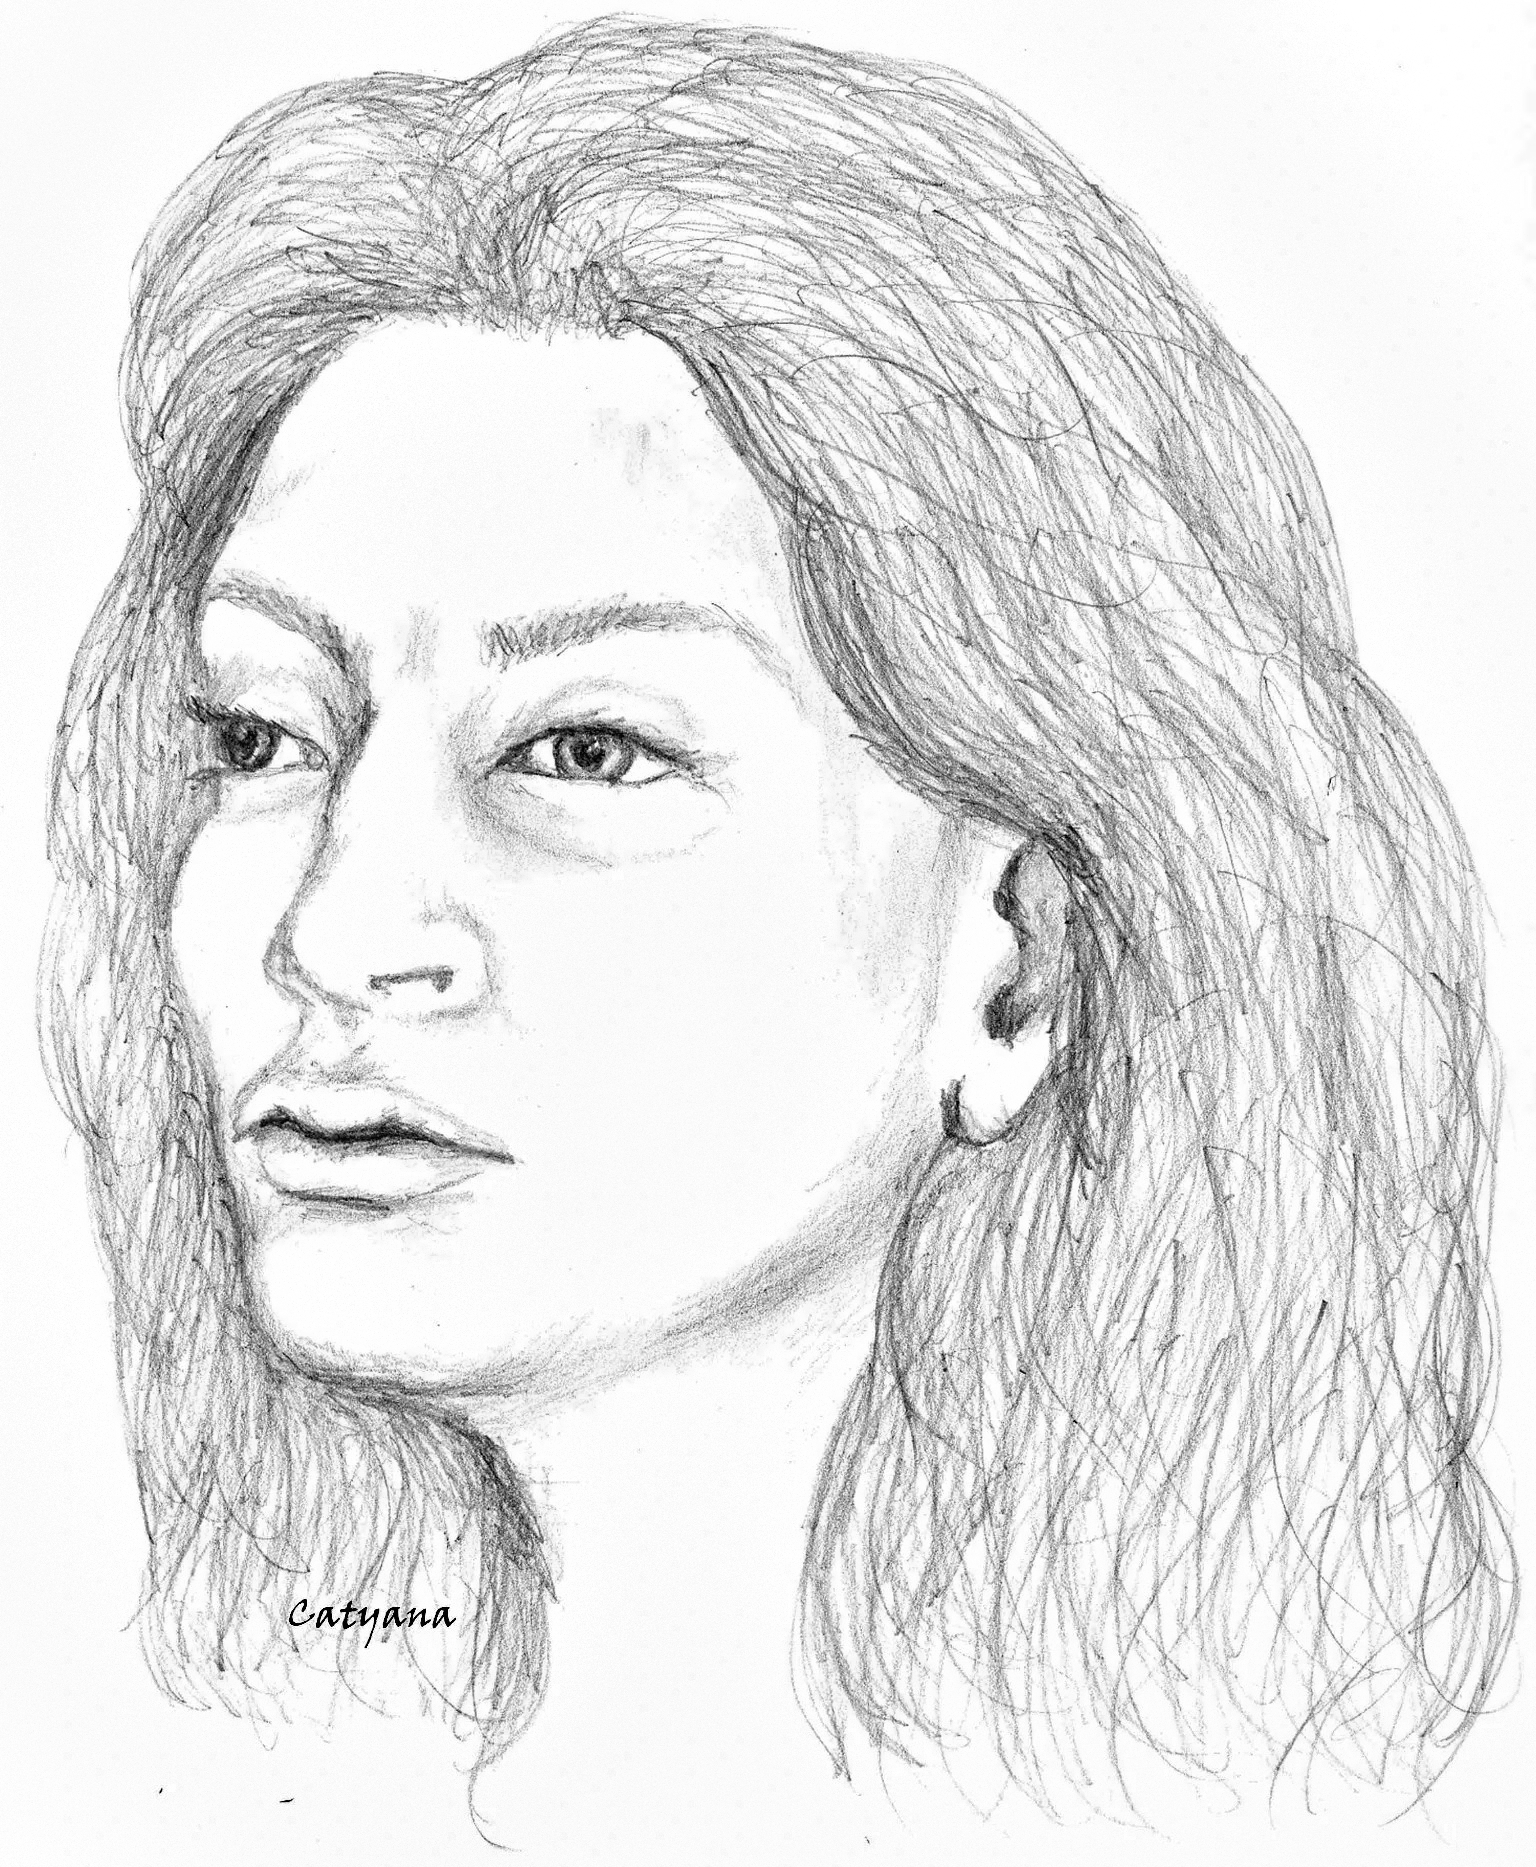 Broward County Jane Doe (April 23, 1974)